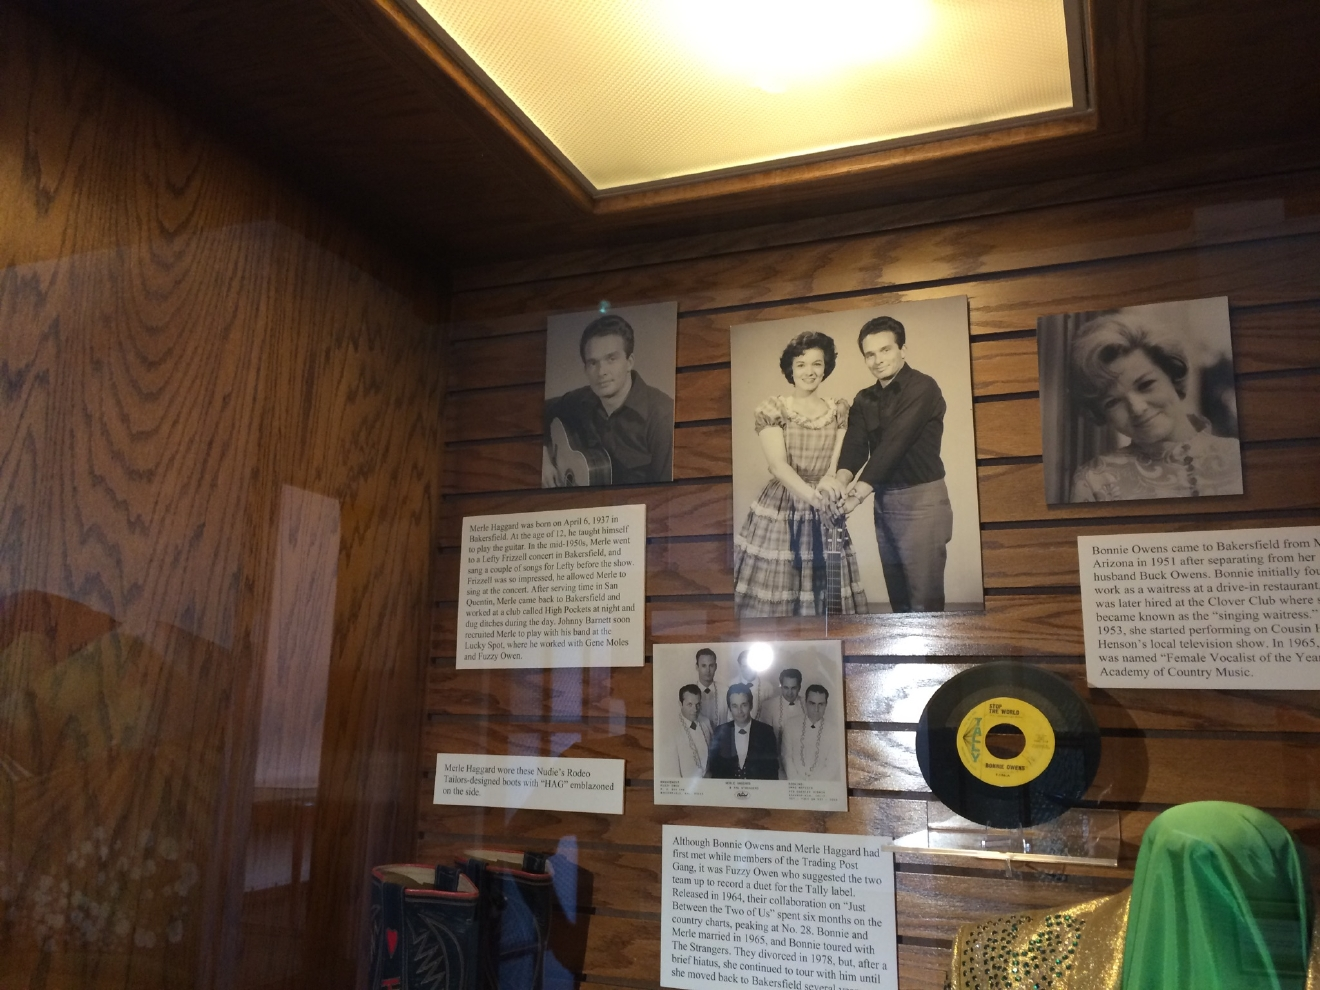 A display on Merle Haggard is seen Wednesday, April 6, 2016, at the Kern County Museum in Bakersfield, Calif. Music legend Haggard died Wednesday at the age of 79. (KBAK/KBFX photo/Carol Ferguson)